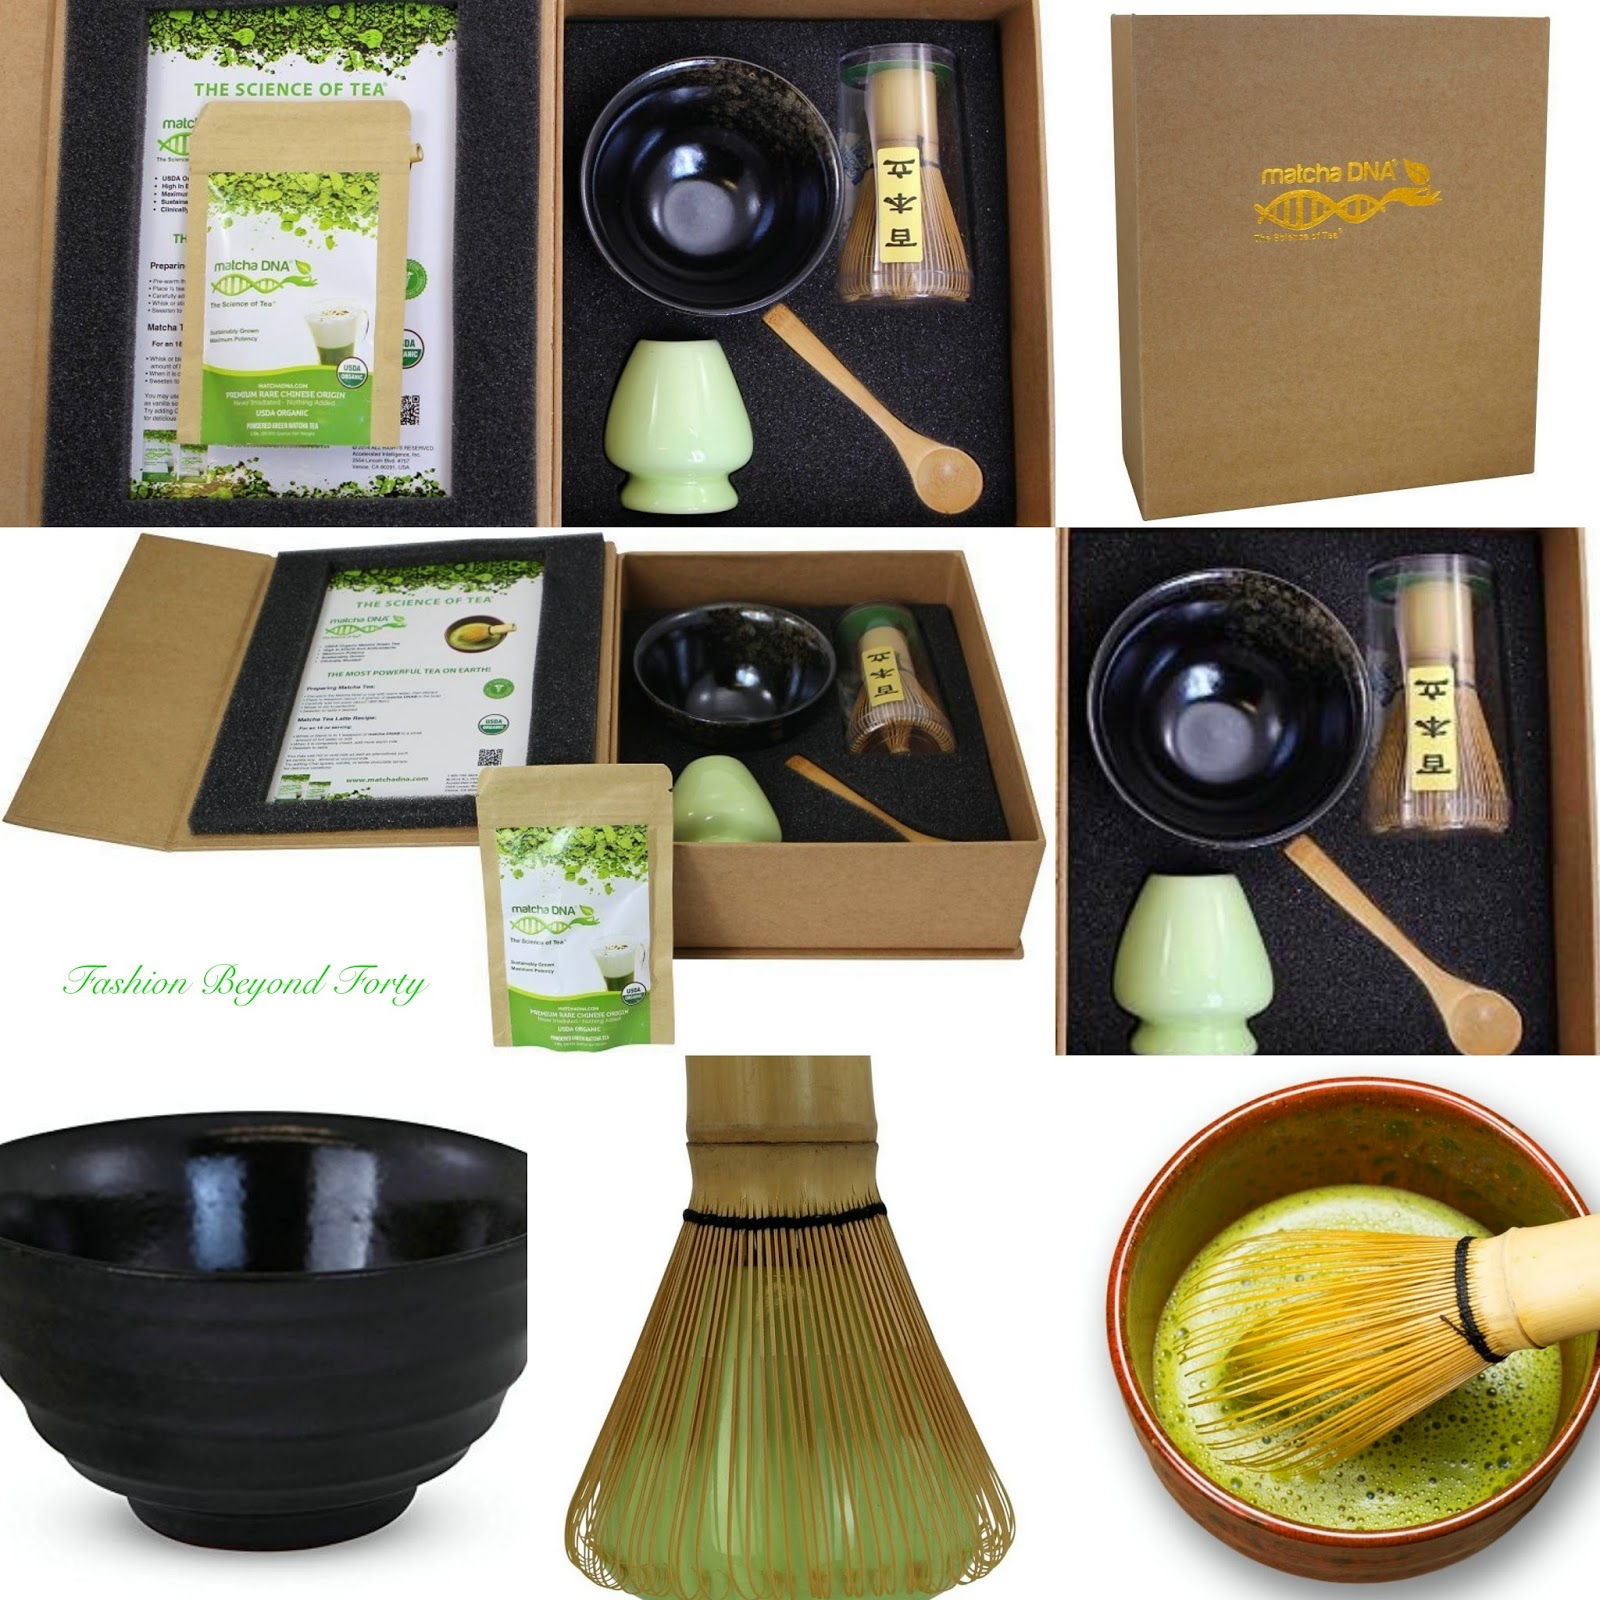 Matcha DNA Tea Ceremony Gift Set Review